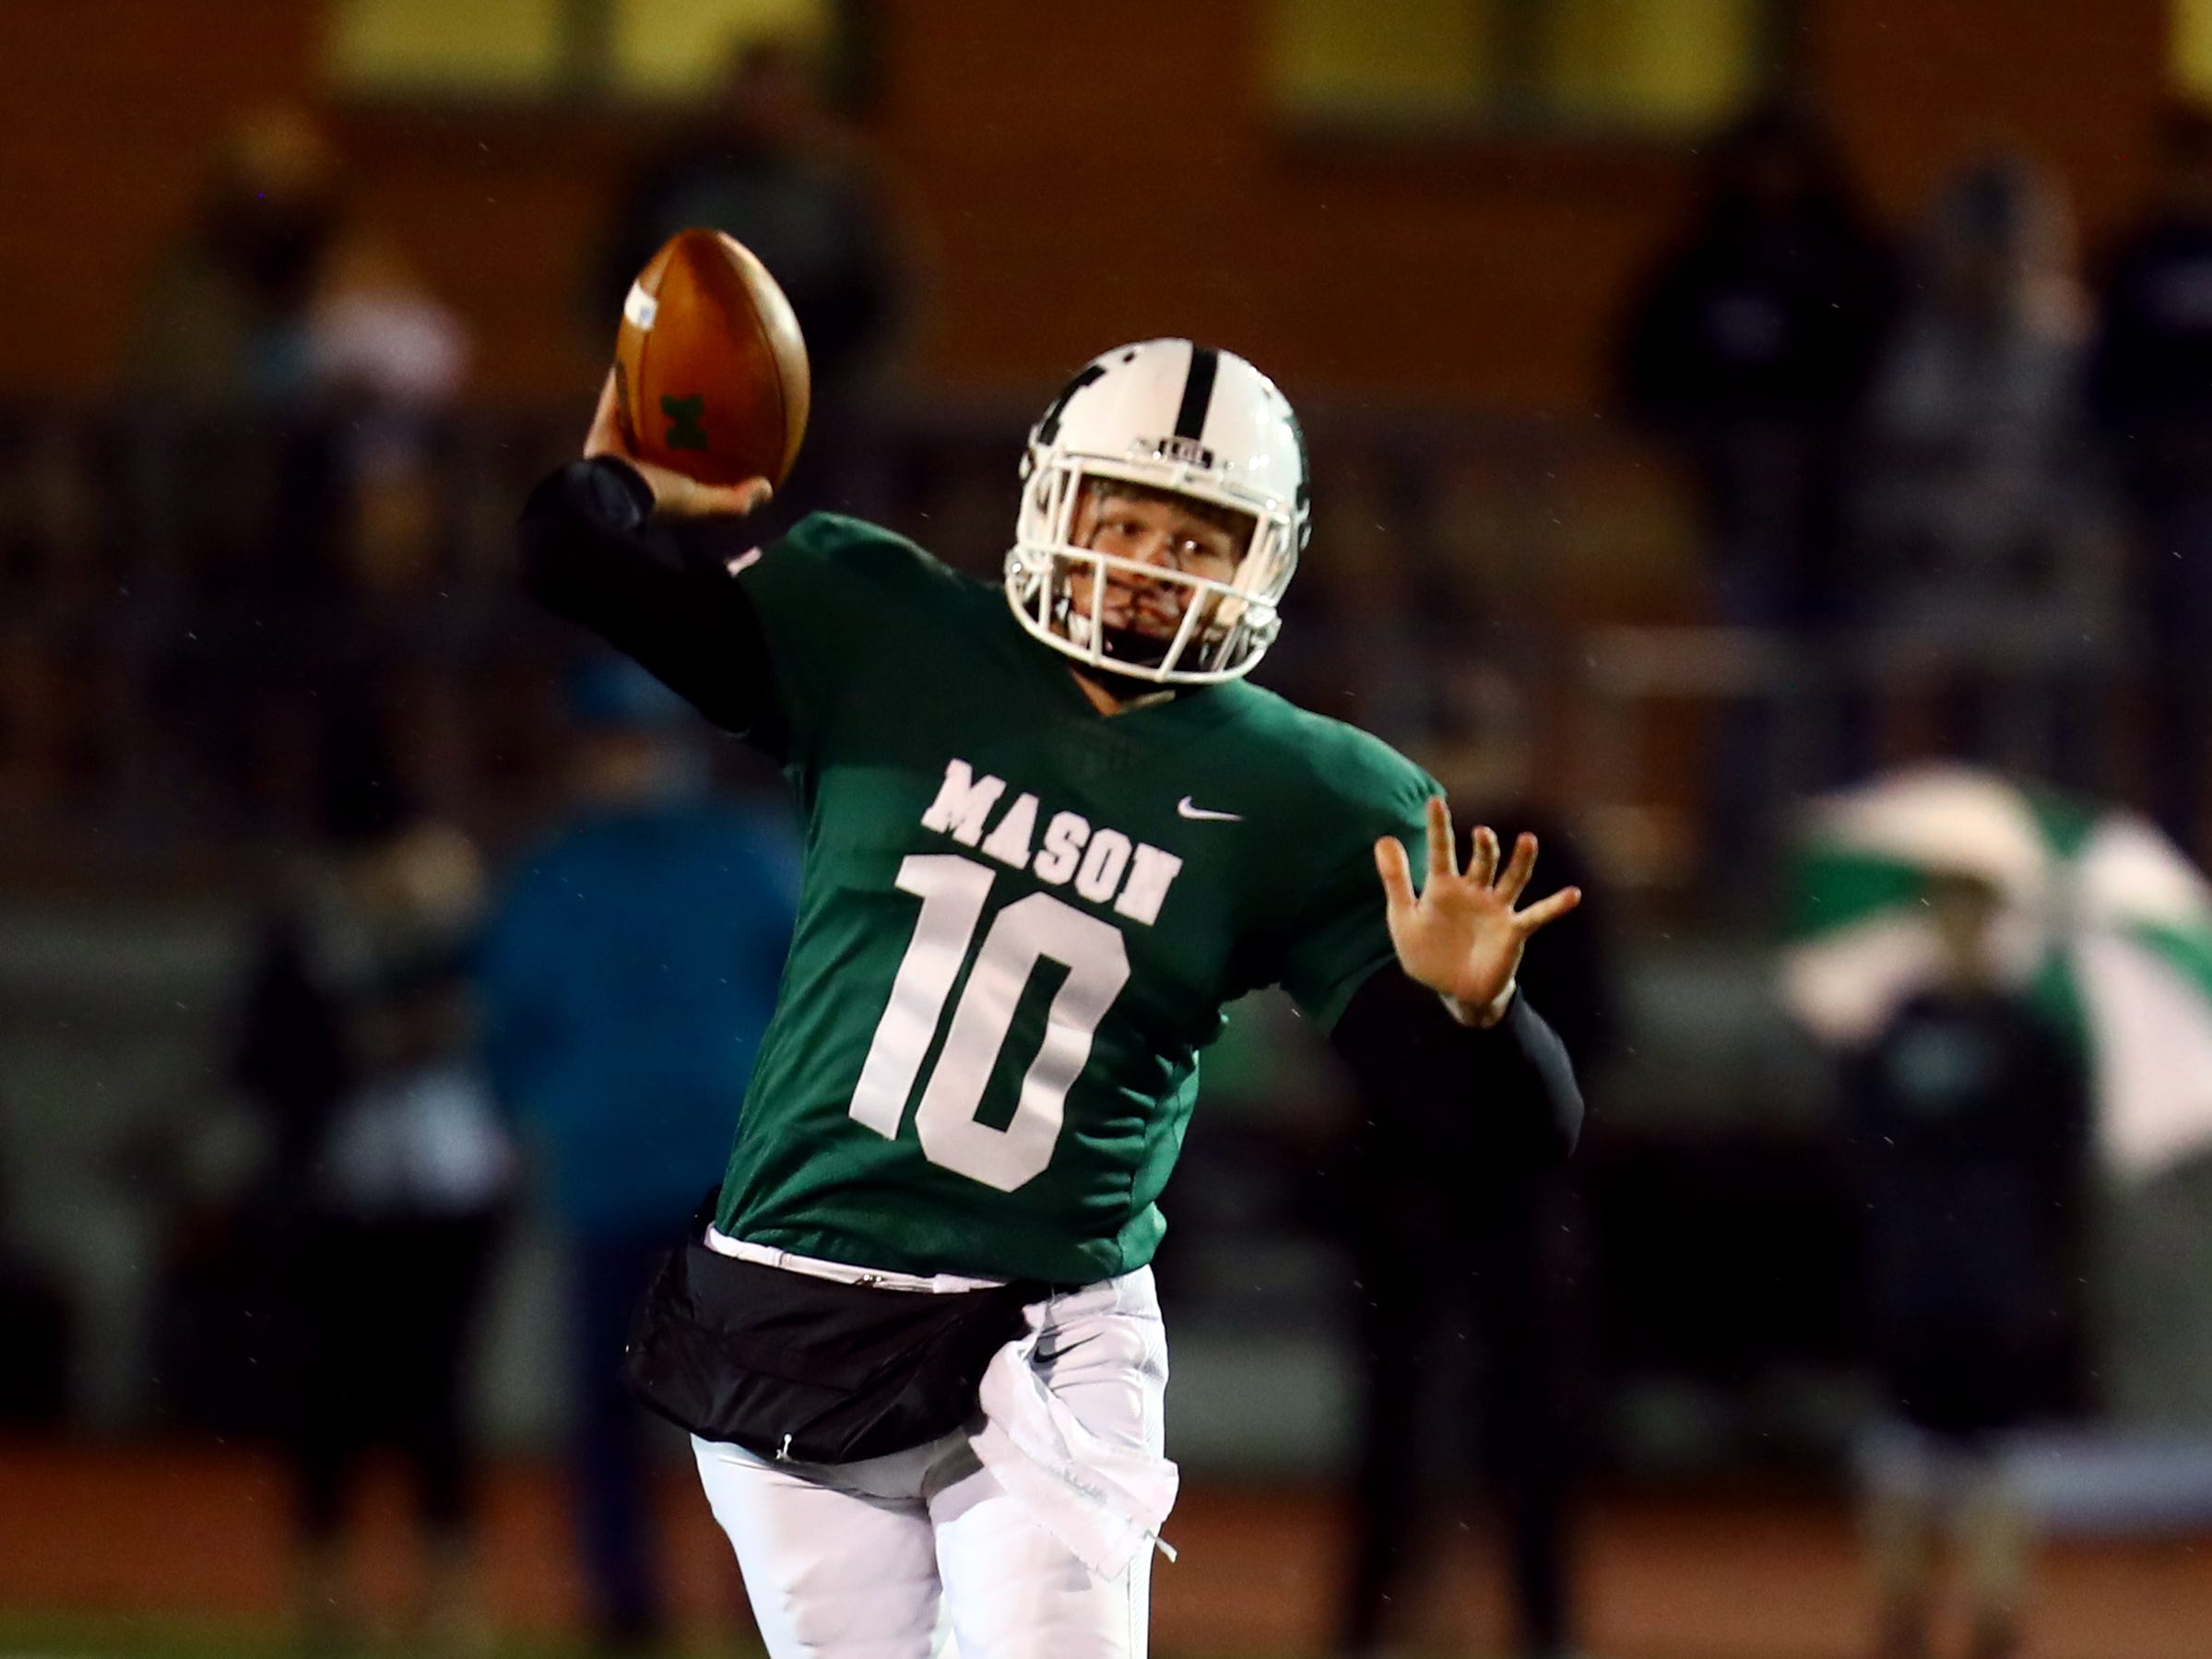 Mason quarterback Collin Brown attempts a pass the in game between the Lakota East Thunderhawks and the Mason Comets Nov. 2.